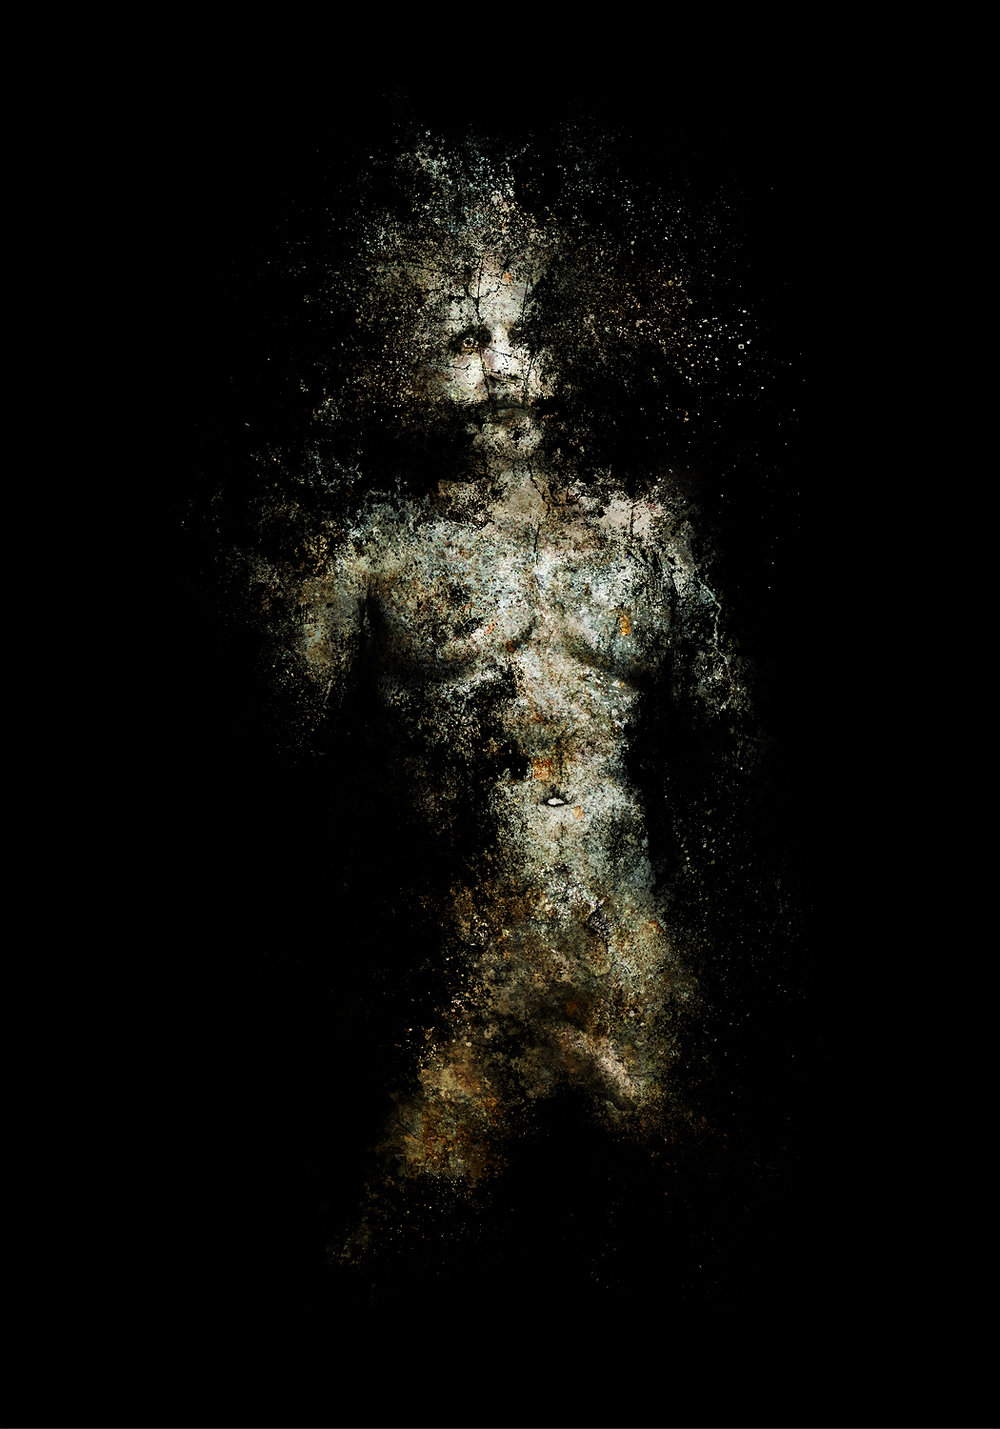 self-portrait, (season of mists, no. 2)  2015 Archival pigment print 100 H x 70 W cm / 39 ¼ x 27 ½ in